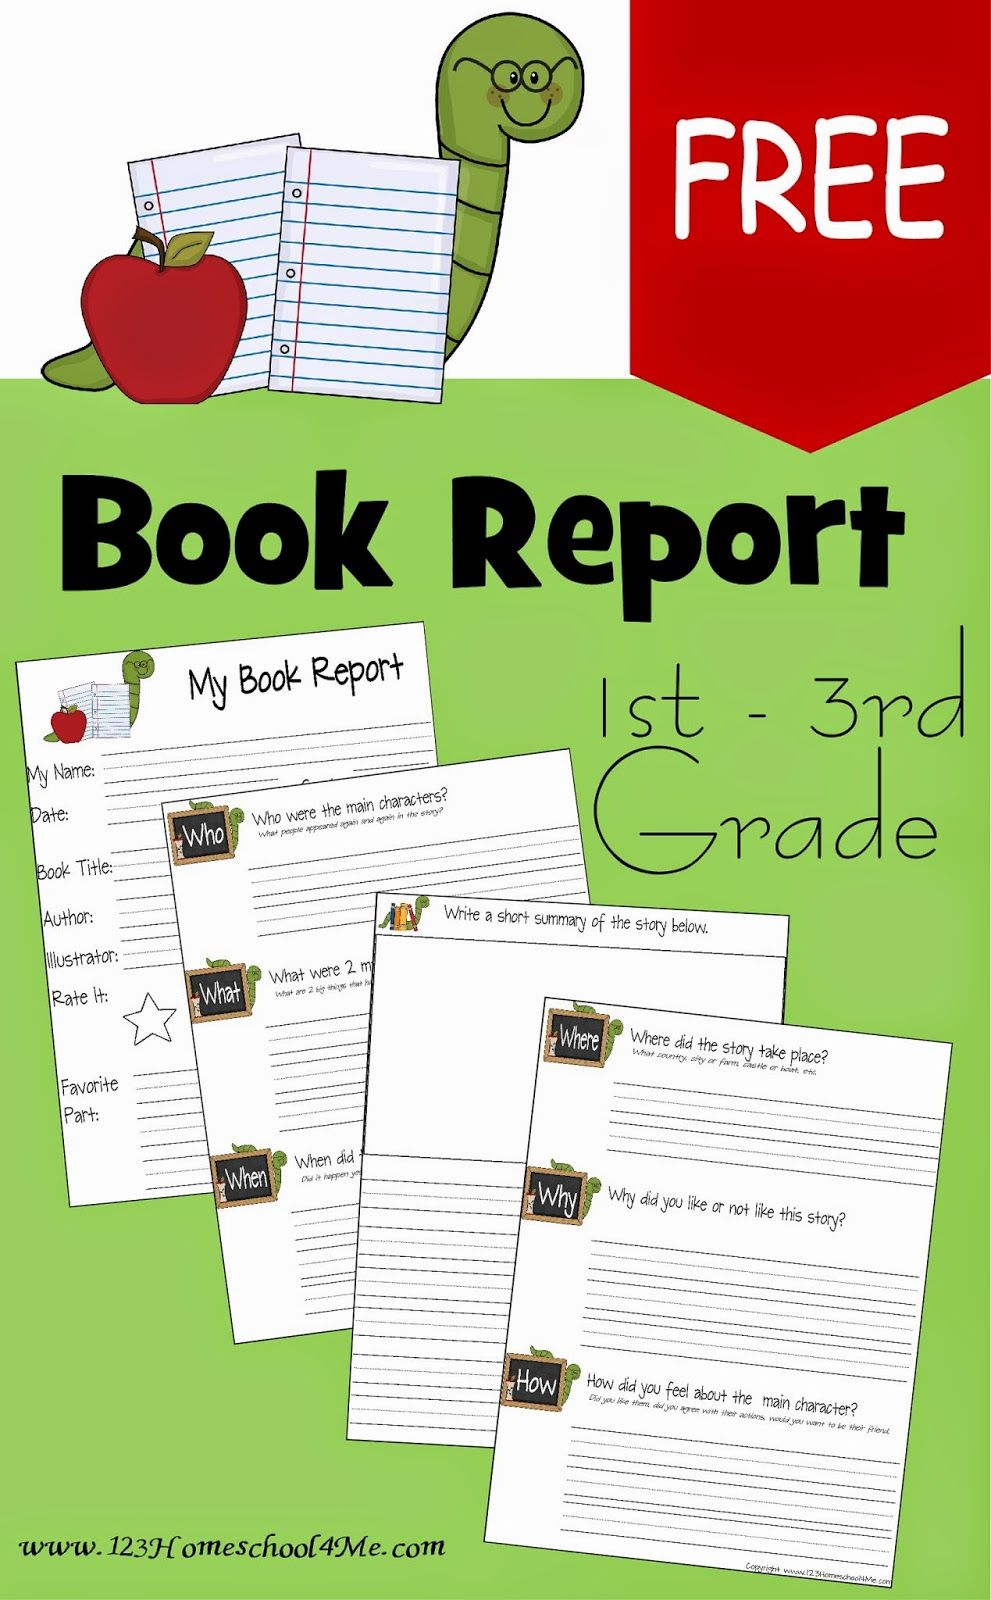 Free Book Report Template | Play Activities For Kids | 3Rd Grade - Free Printable Book Report Forms For Second Grade